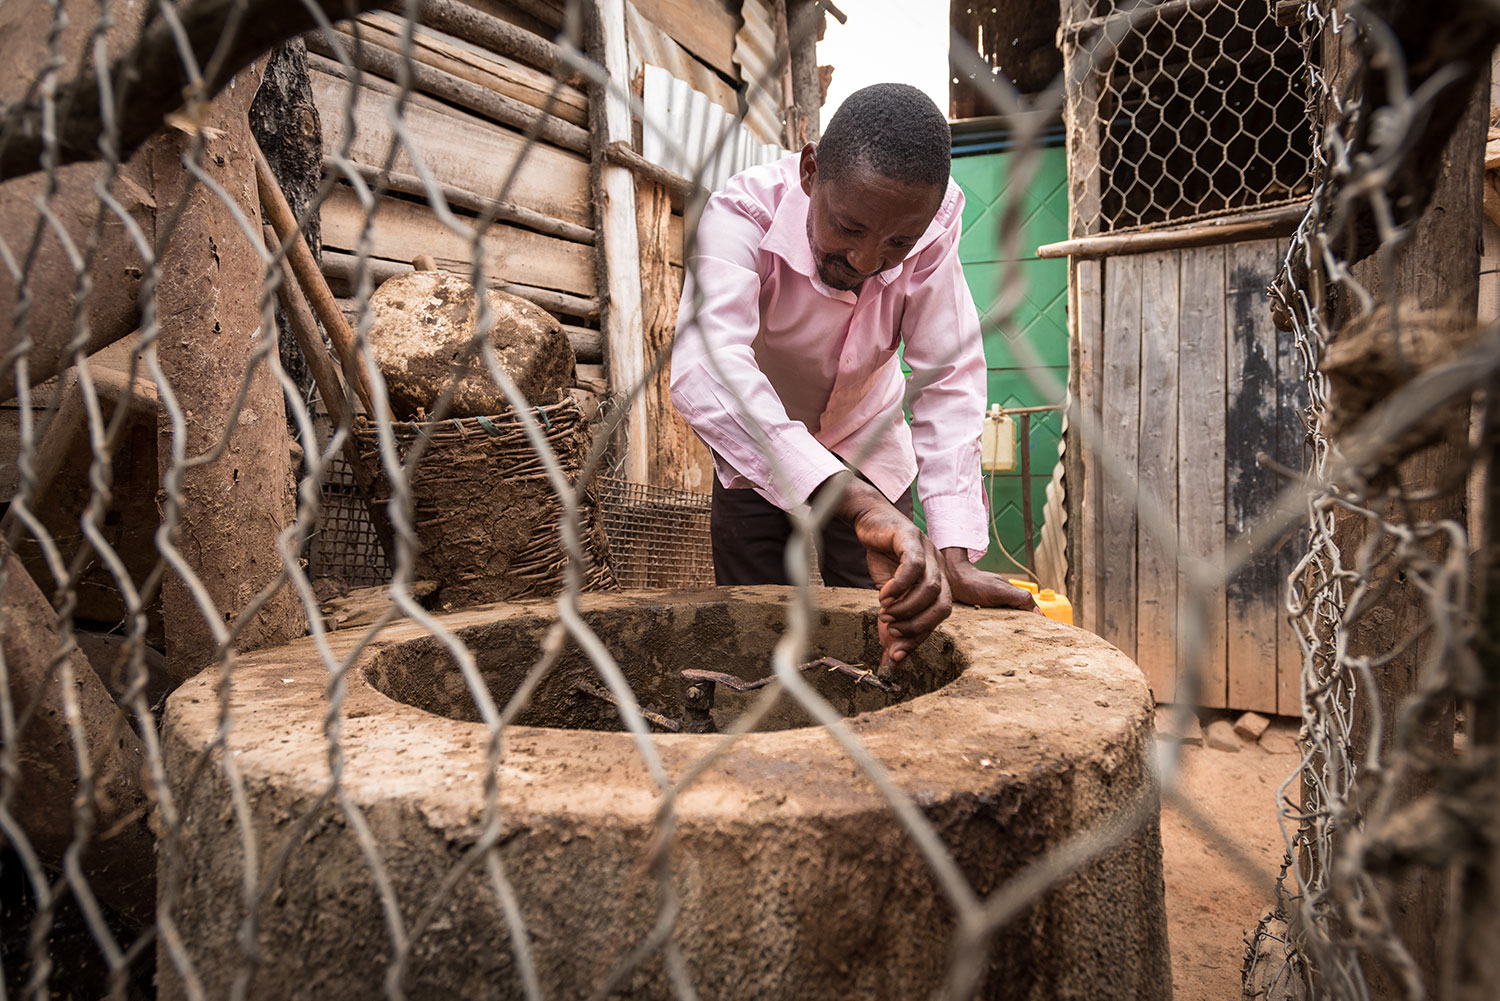 Phocas works at his farm in Rwanda